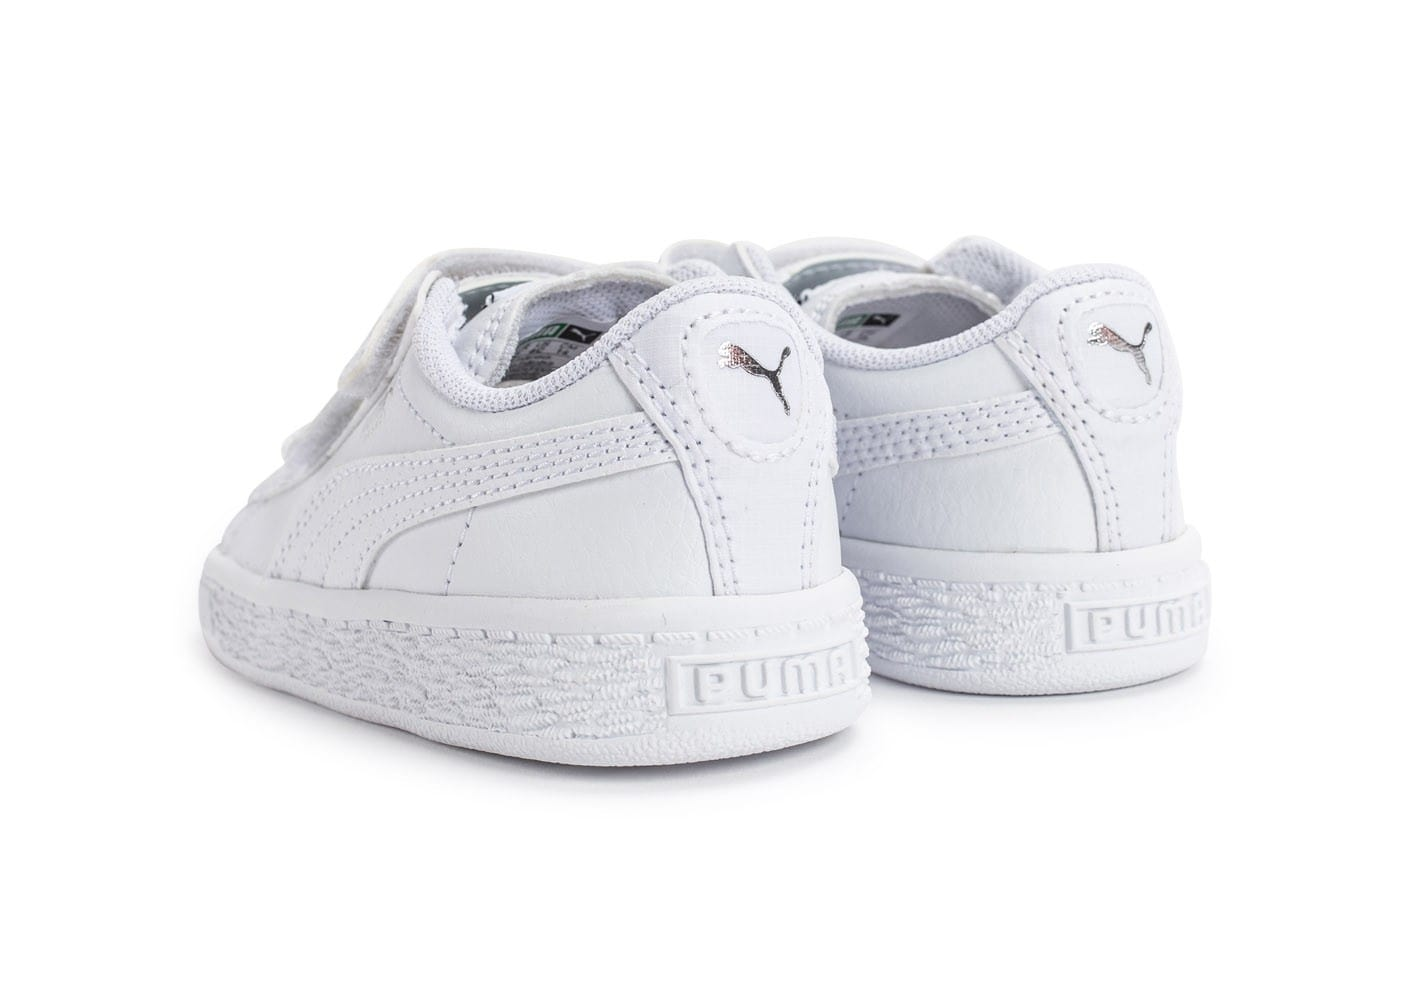 soldes puma basket b b blanche et argent chaussures. Black Bedroom Furniture Sets. Home Design Ideas